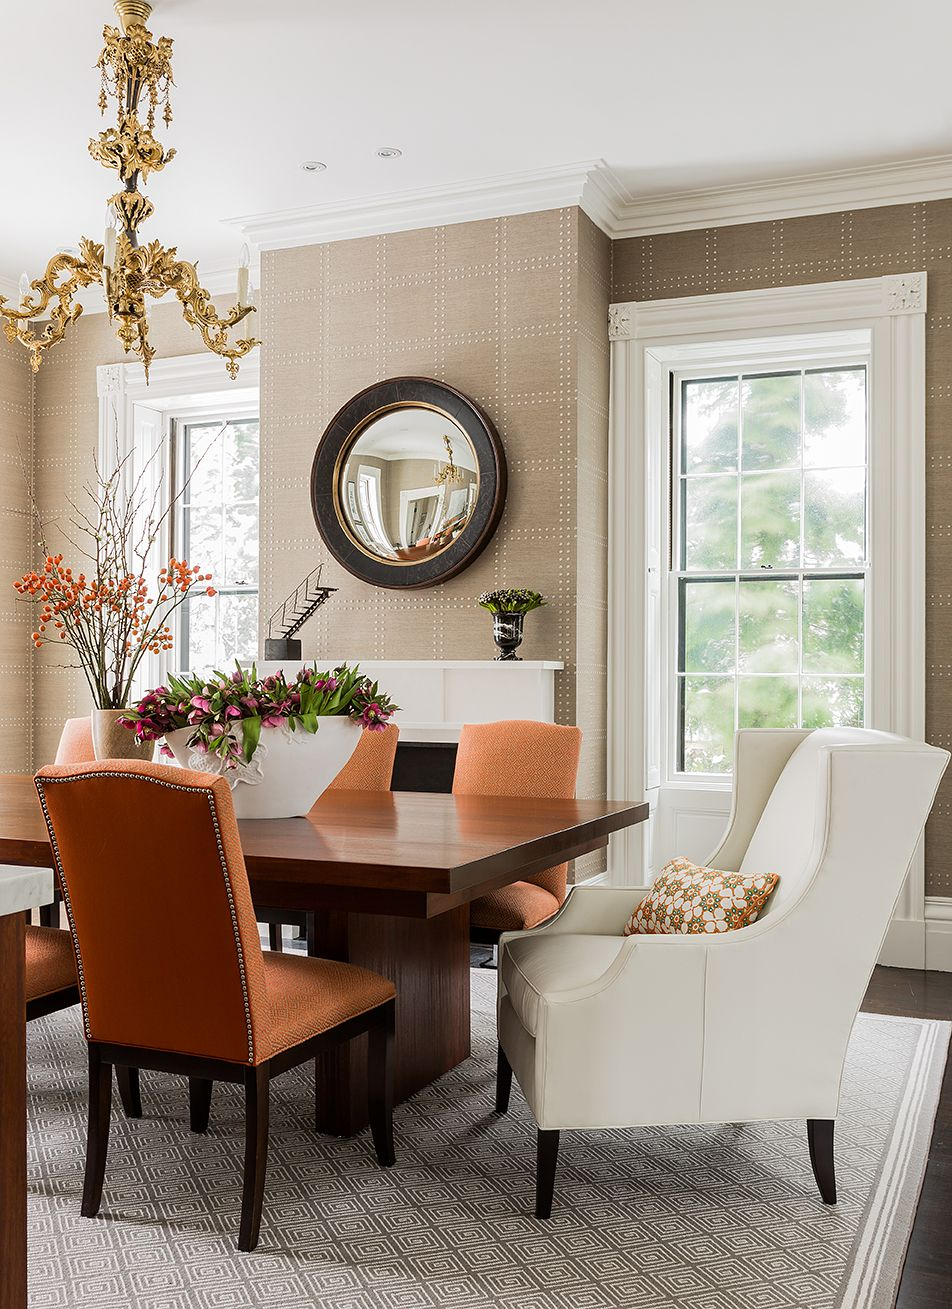 Jamaica pond residence elms interior design dining room phillip jeffries wallcovering